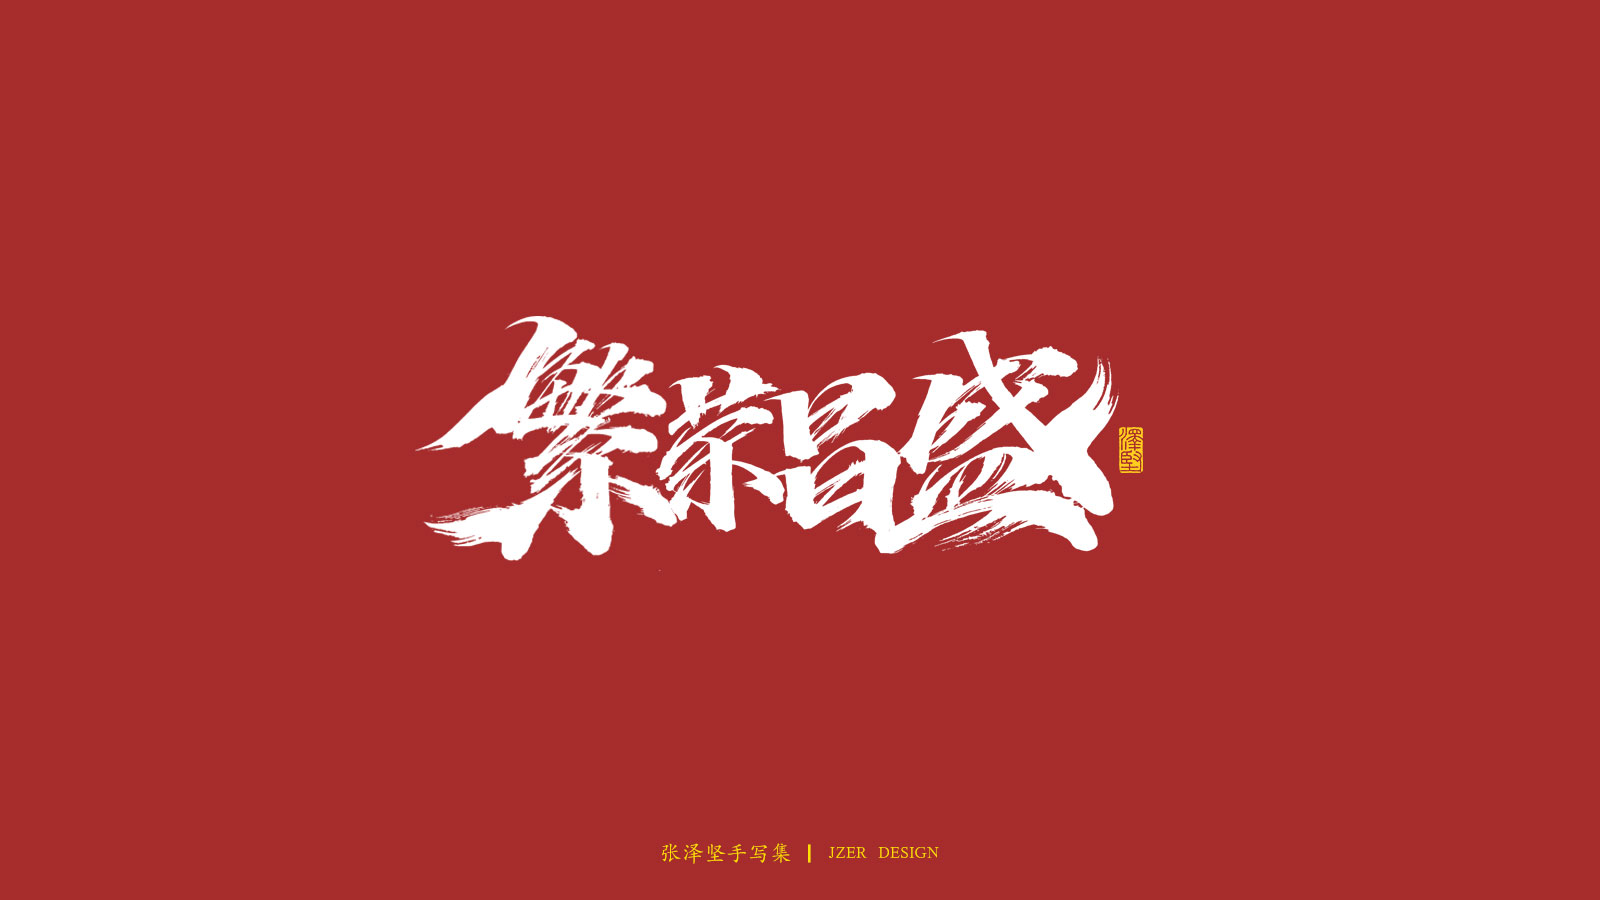 26P Collection of the latest Chinese font design schemes in 2021 #.667